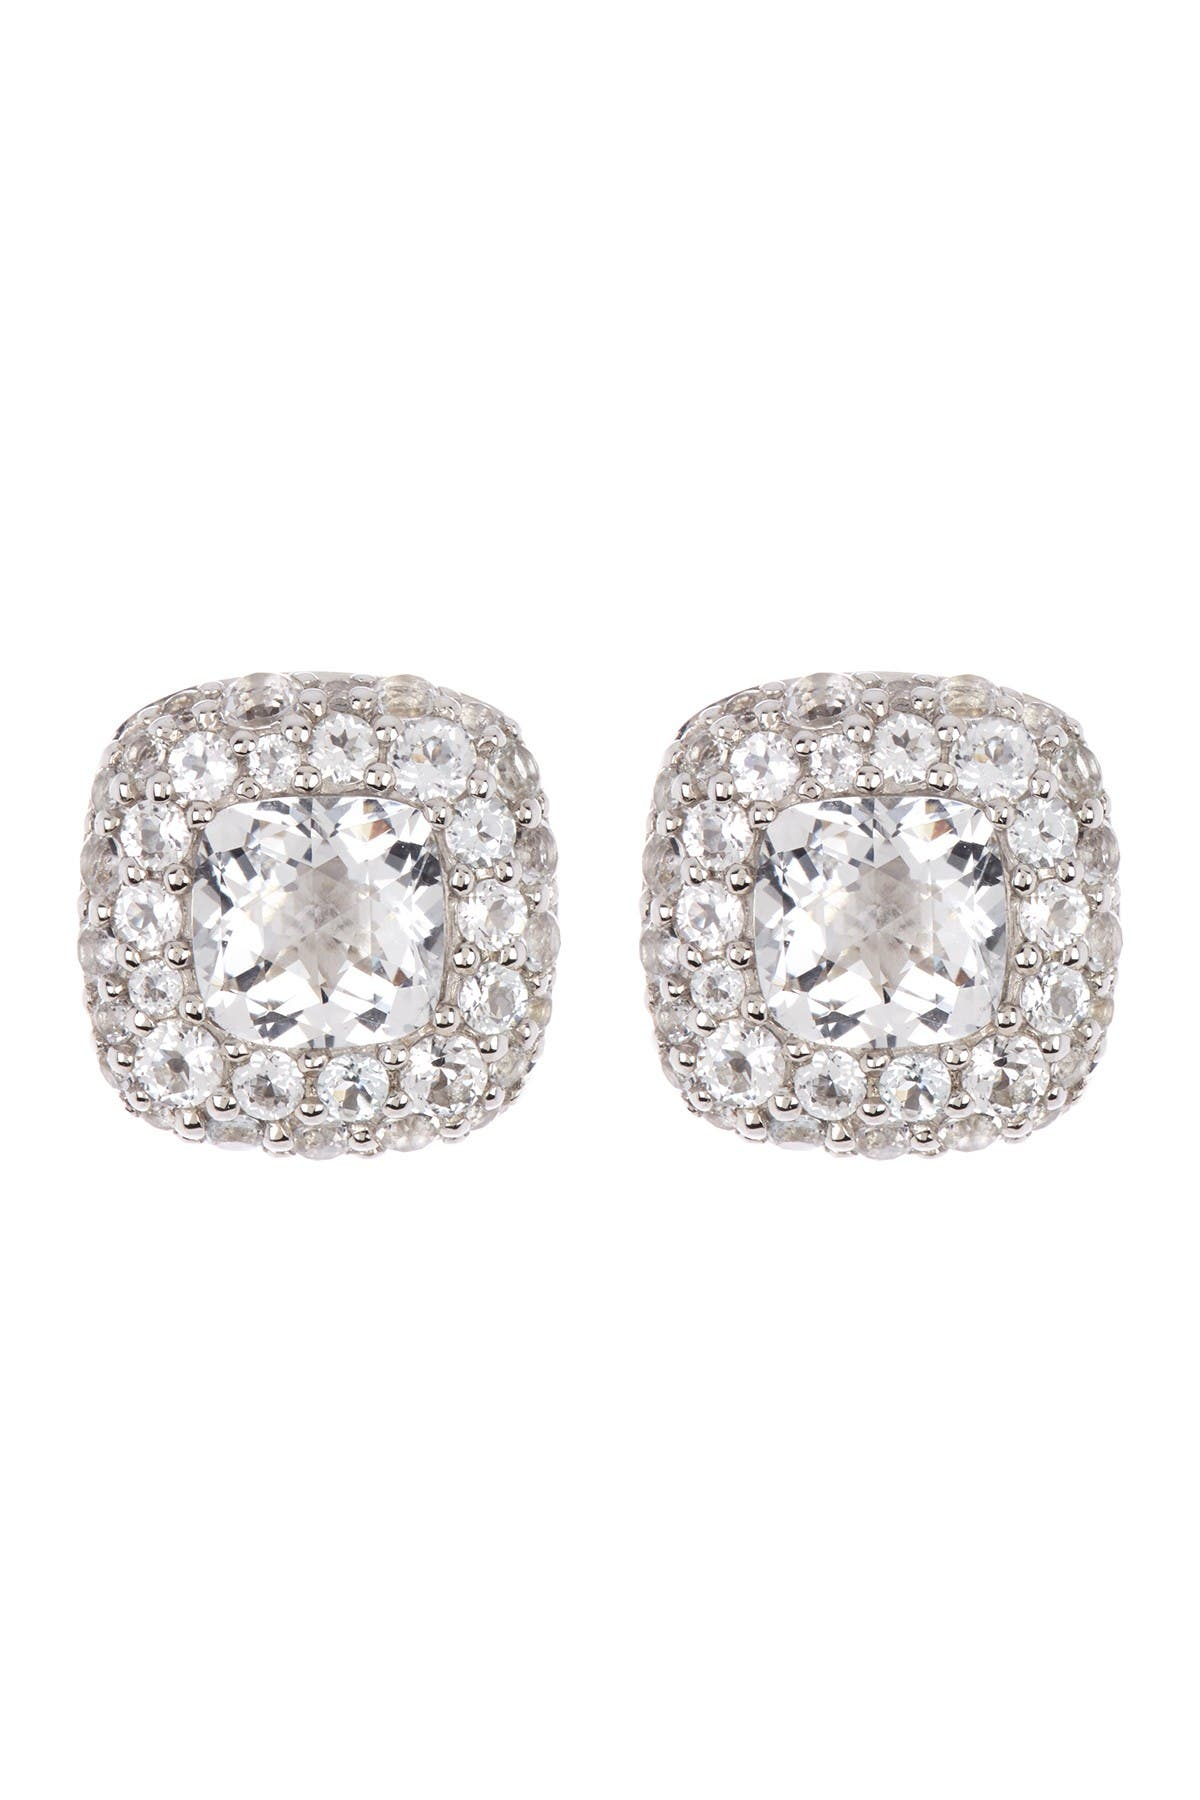 Image of JOHN HARDY Sterling Silver Small Square Earrings